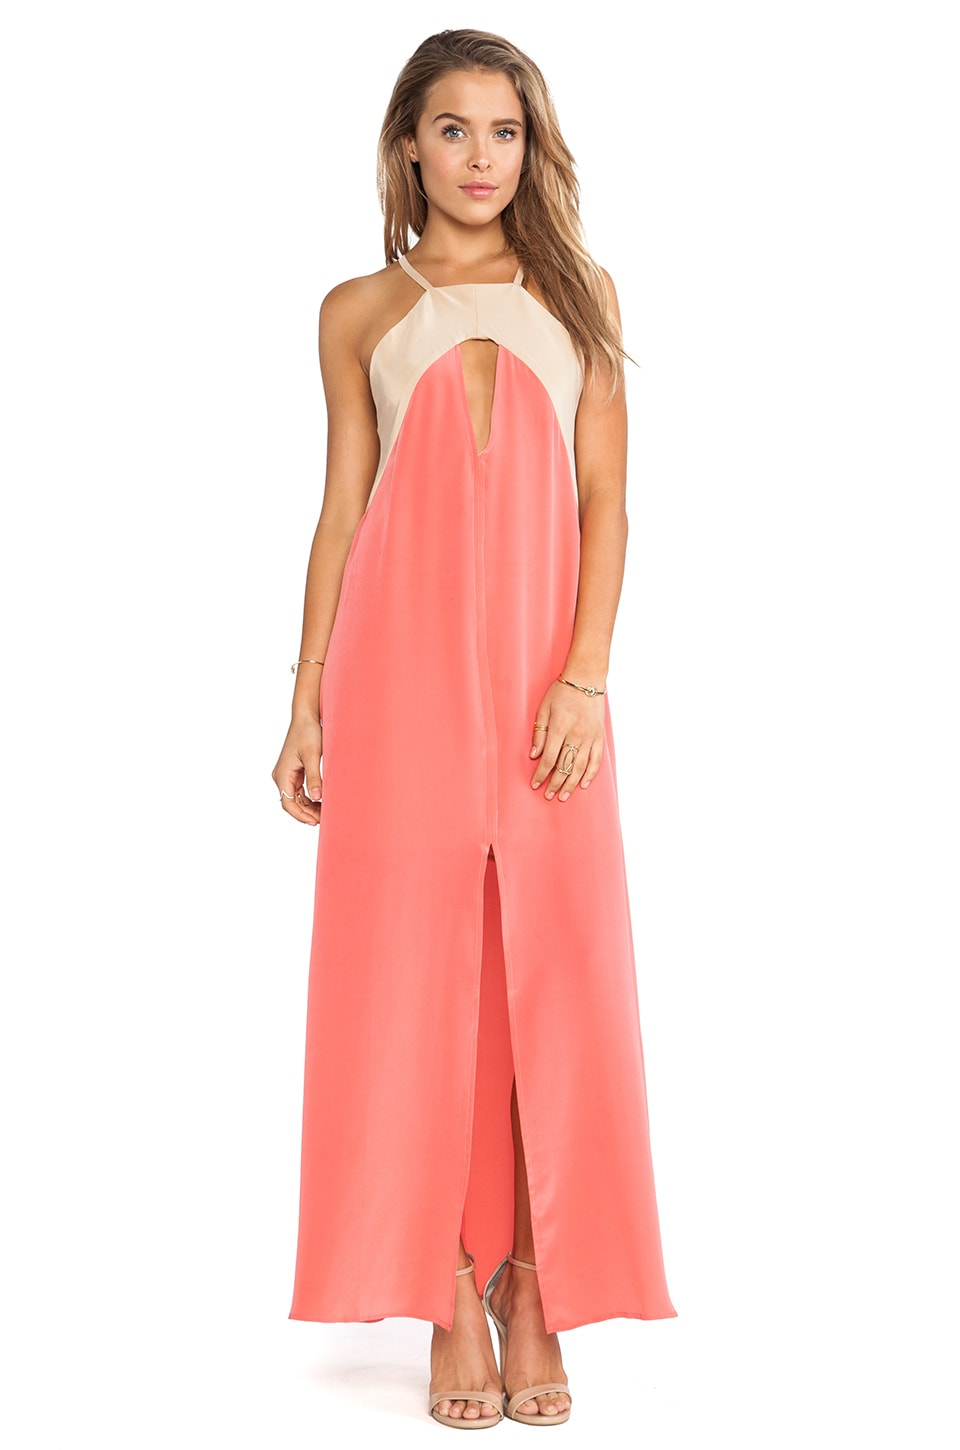 Helena Quinn Triangle Cut Out Maxi Dress in Pink & Cream